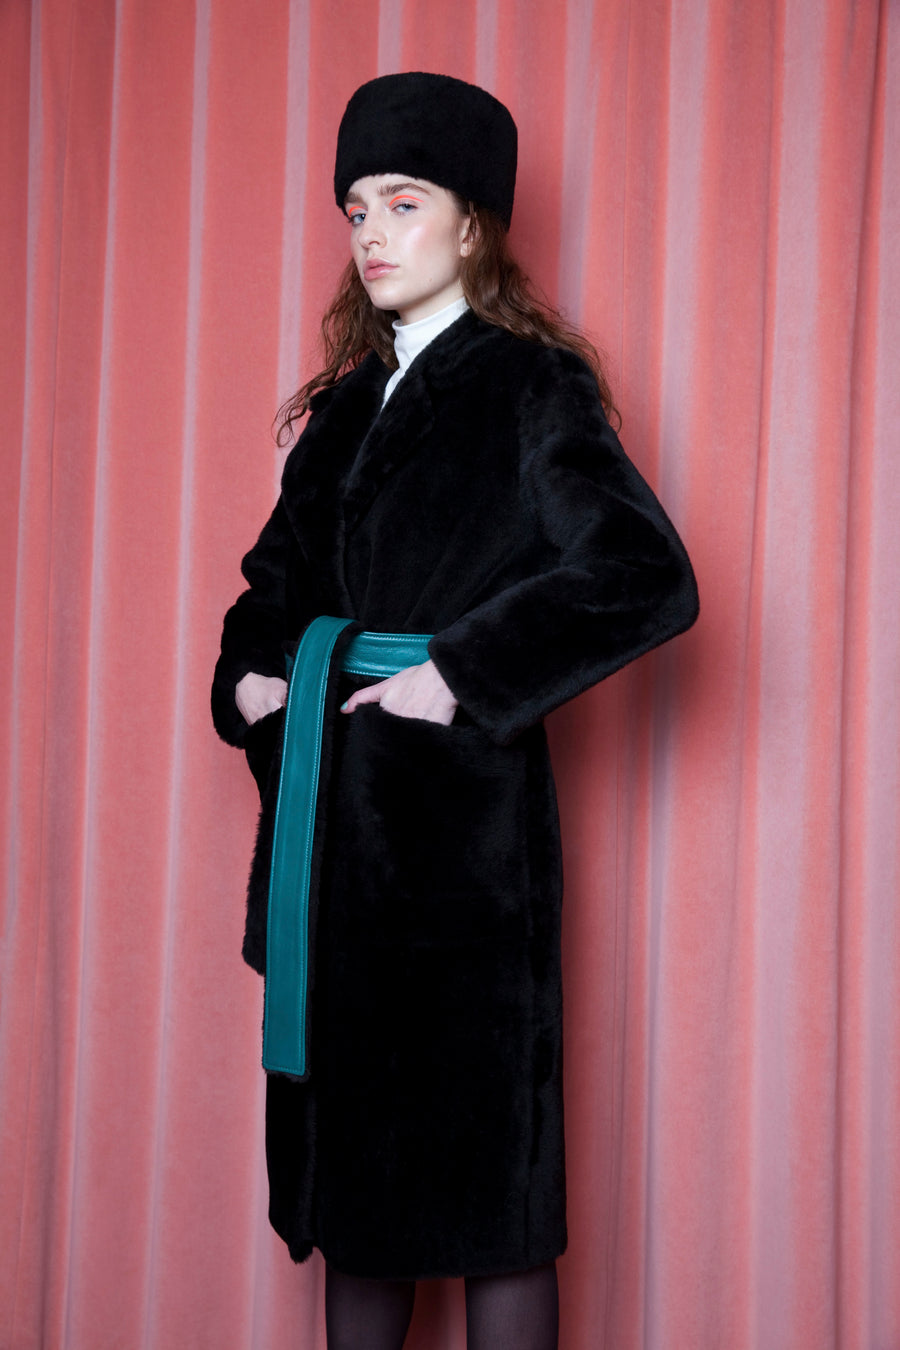 Viktoria Coat Black/Emerald Green